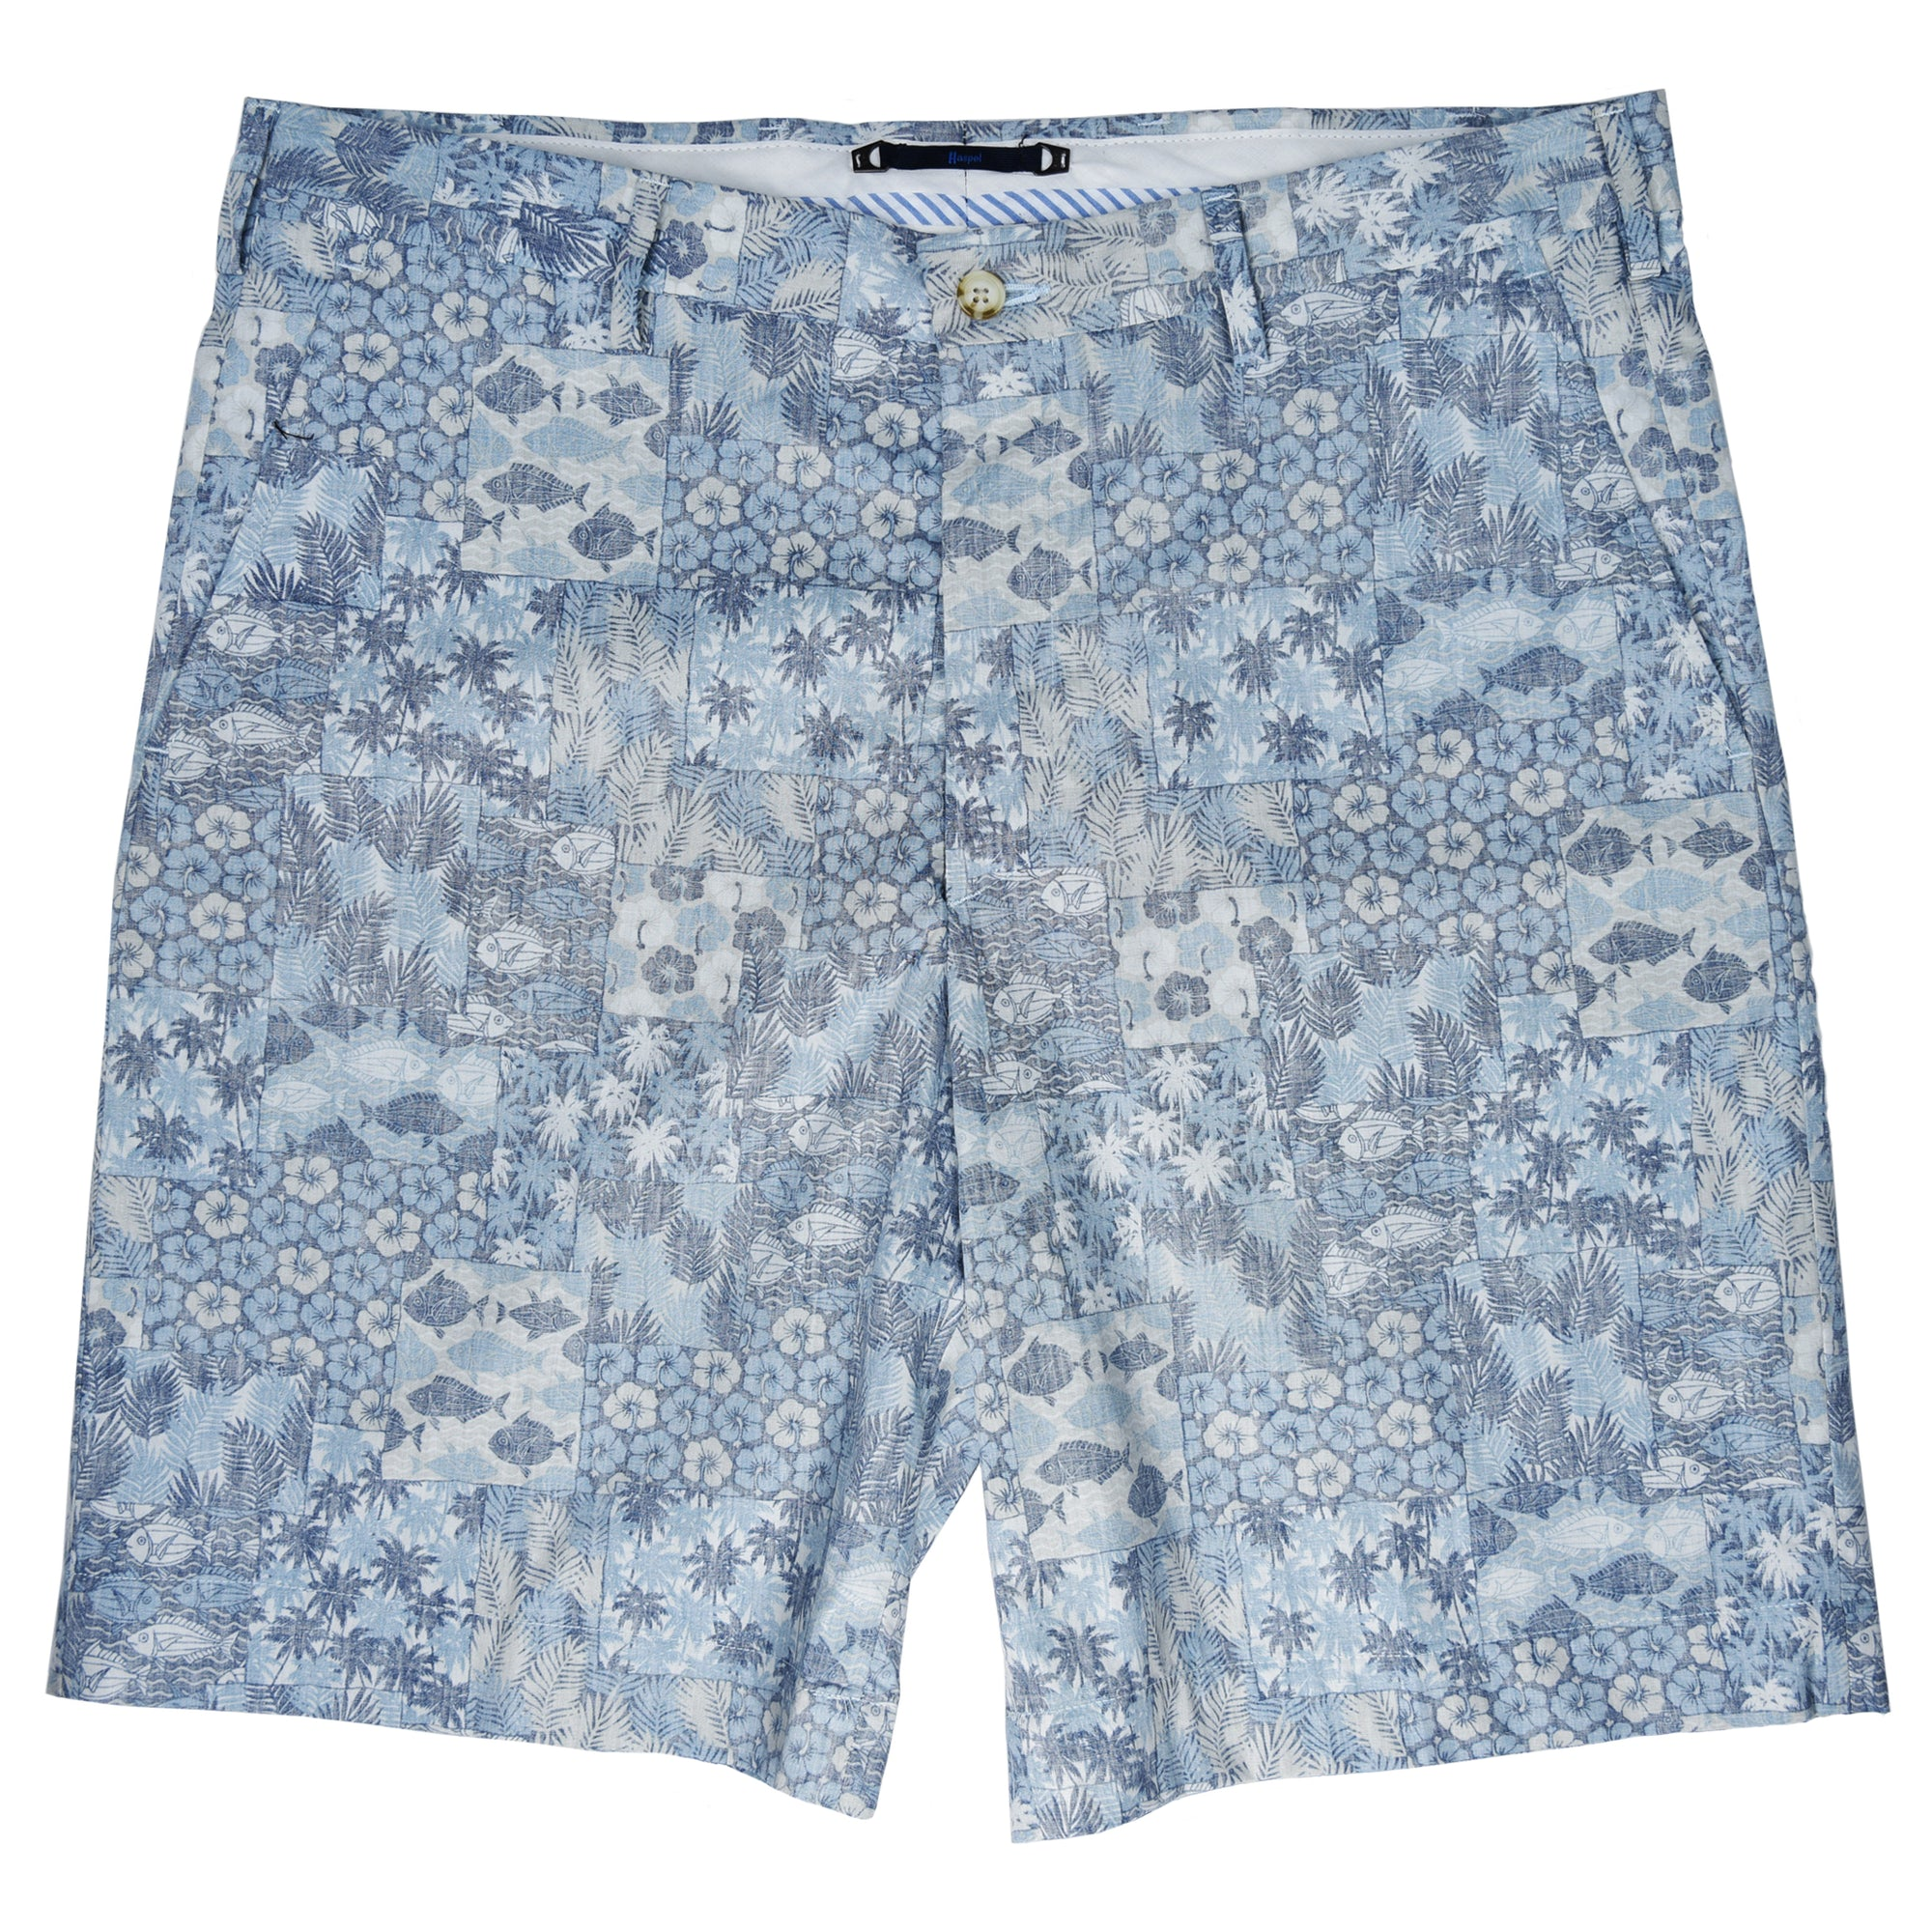 Felicity Light Blue Underwater Oasis Short